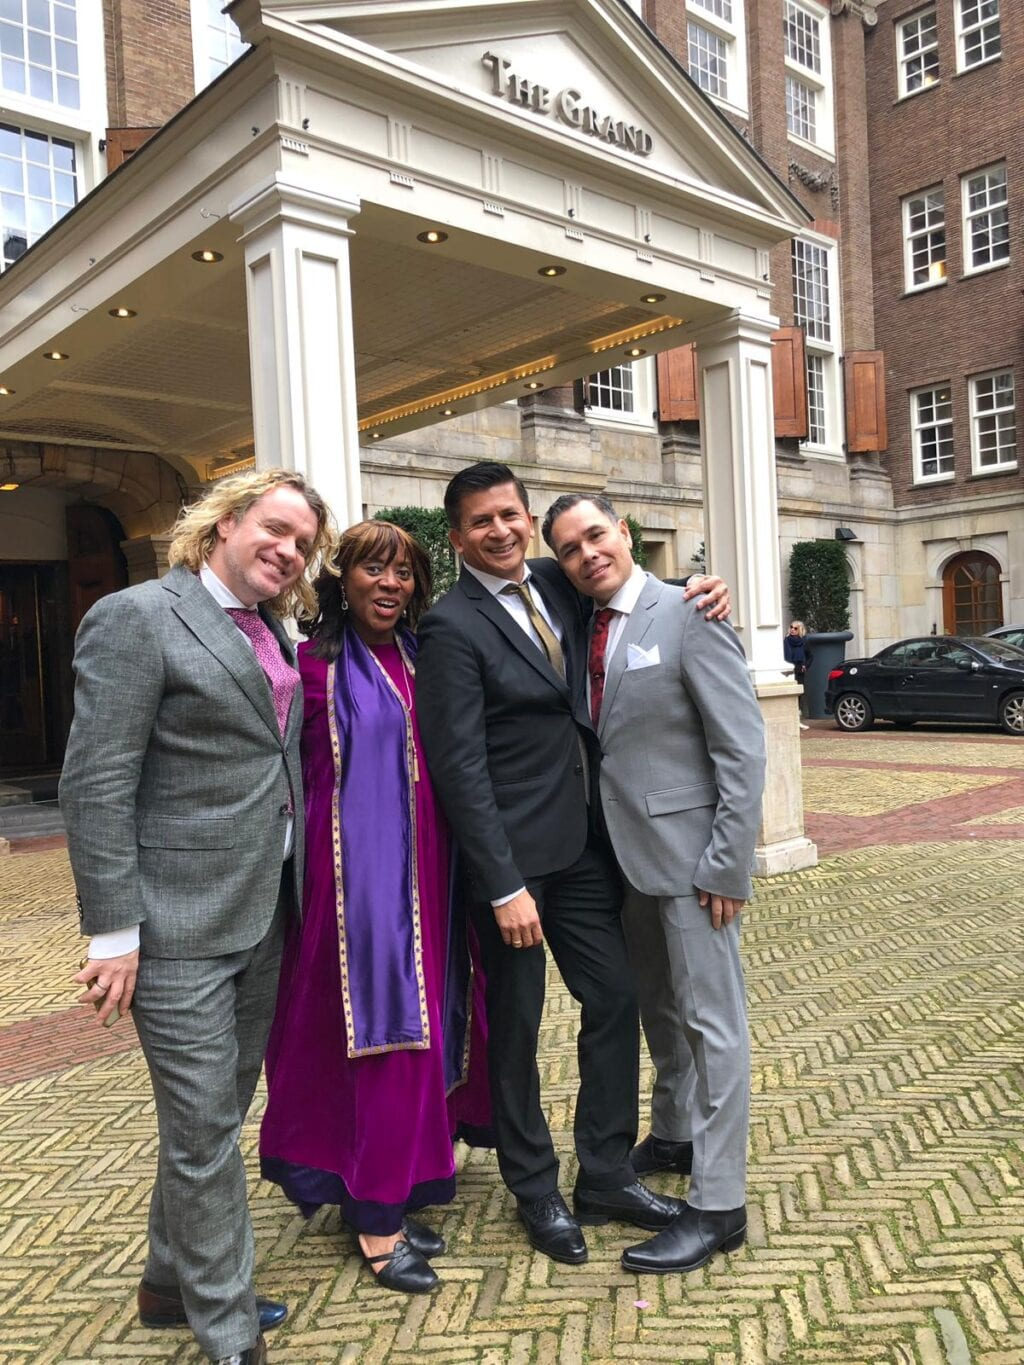 wedding reviews woman in purple robe with gay couple dressed in grey wedding suits